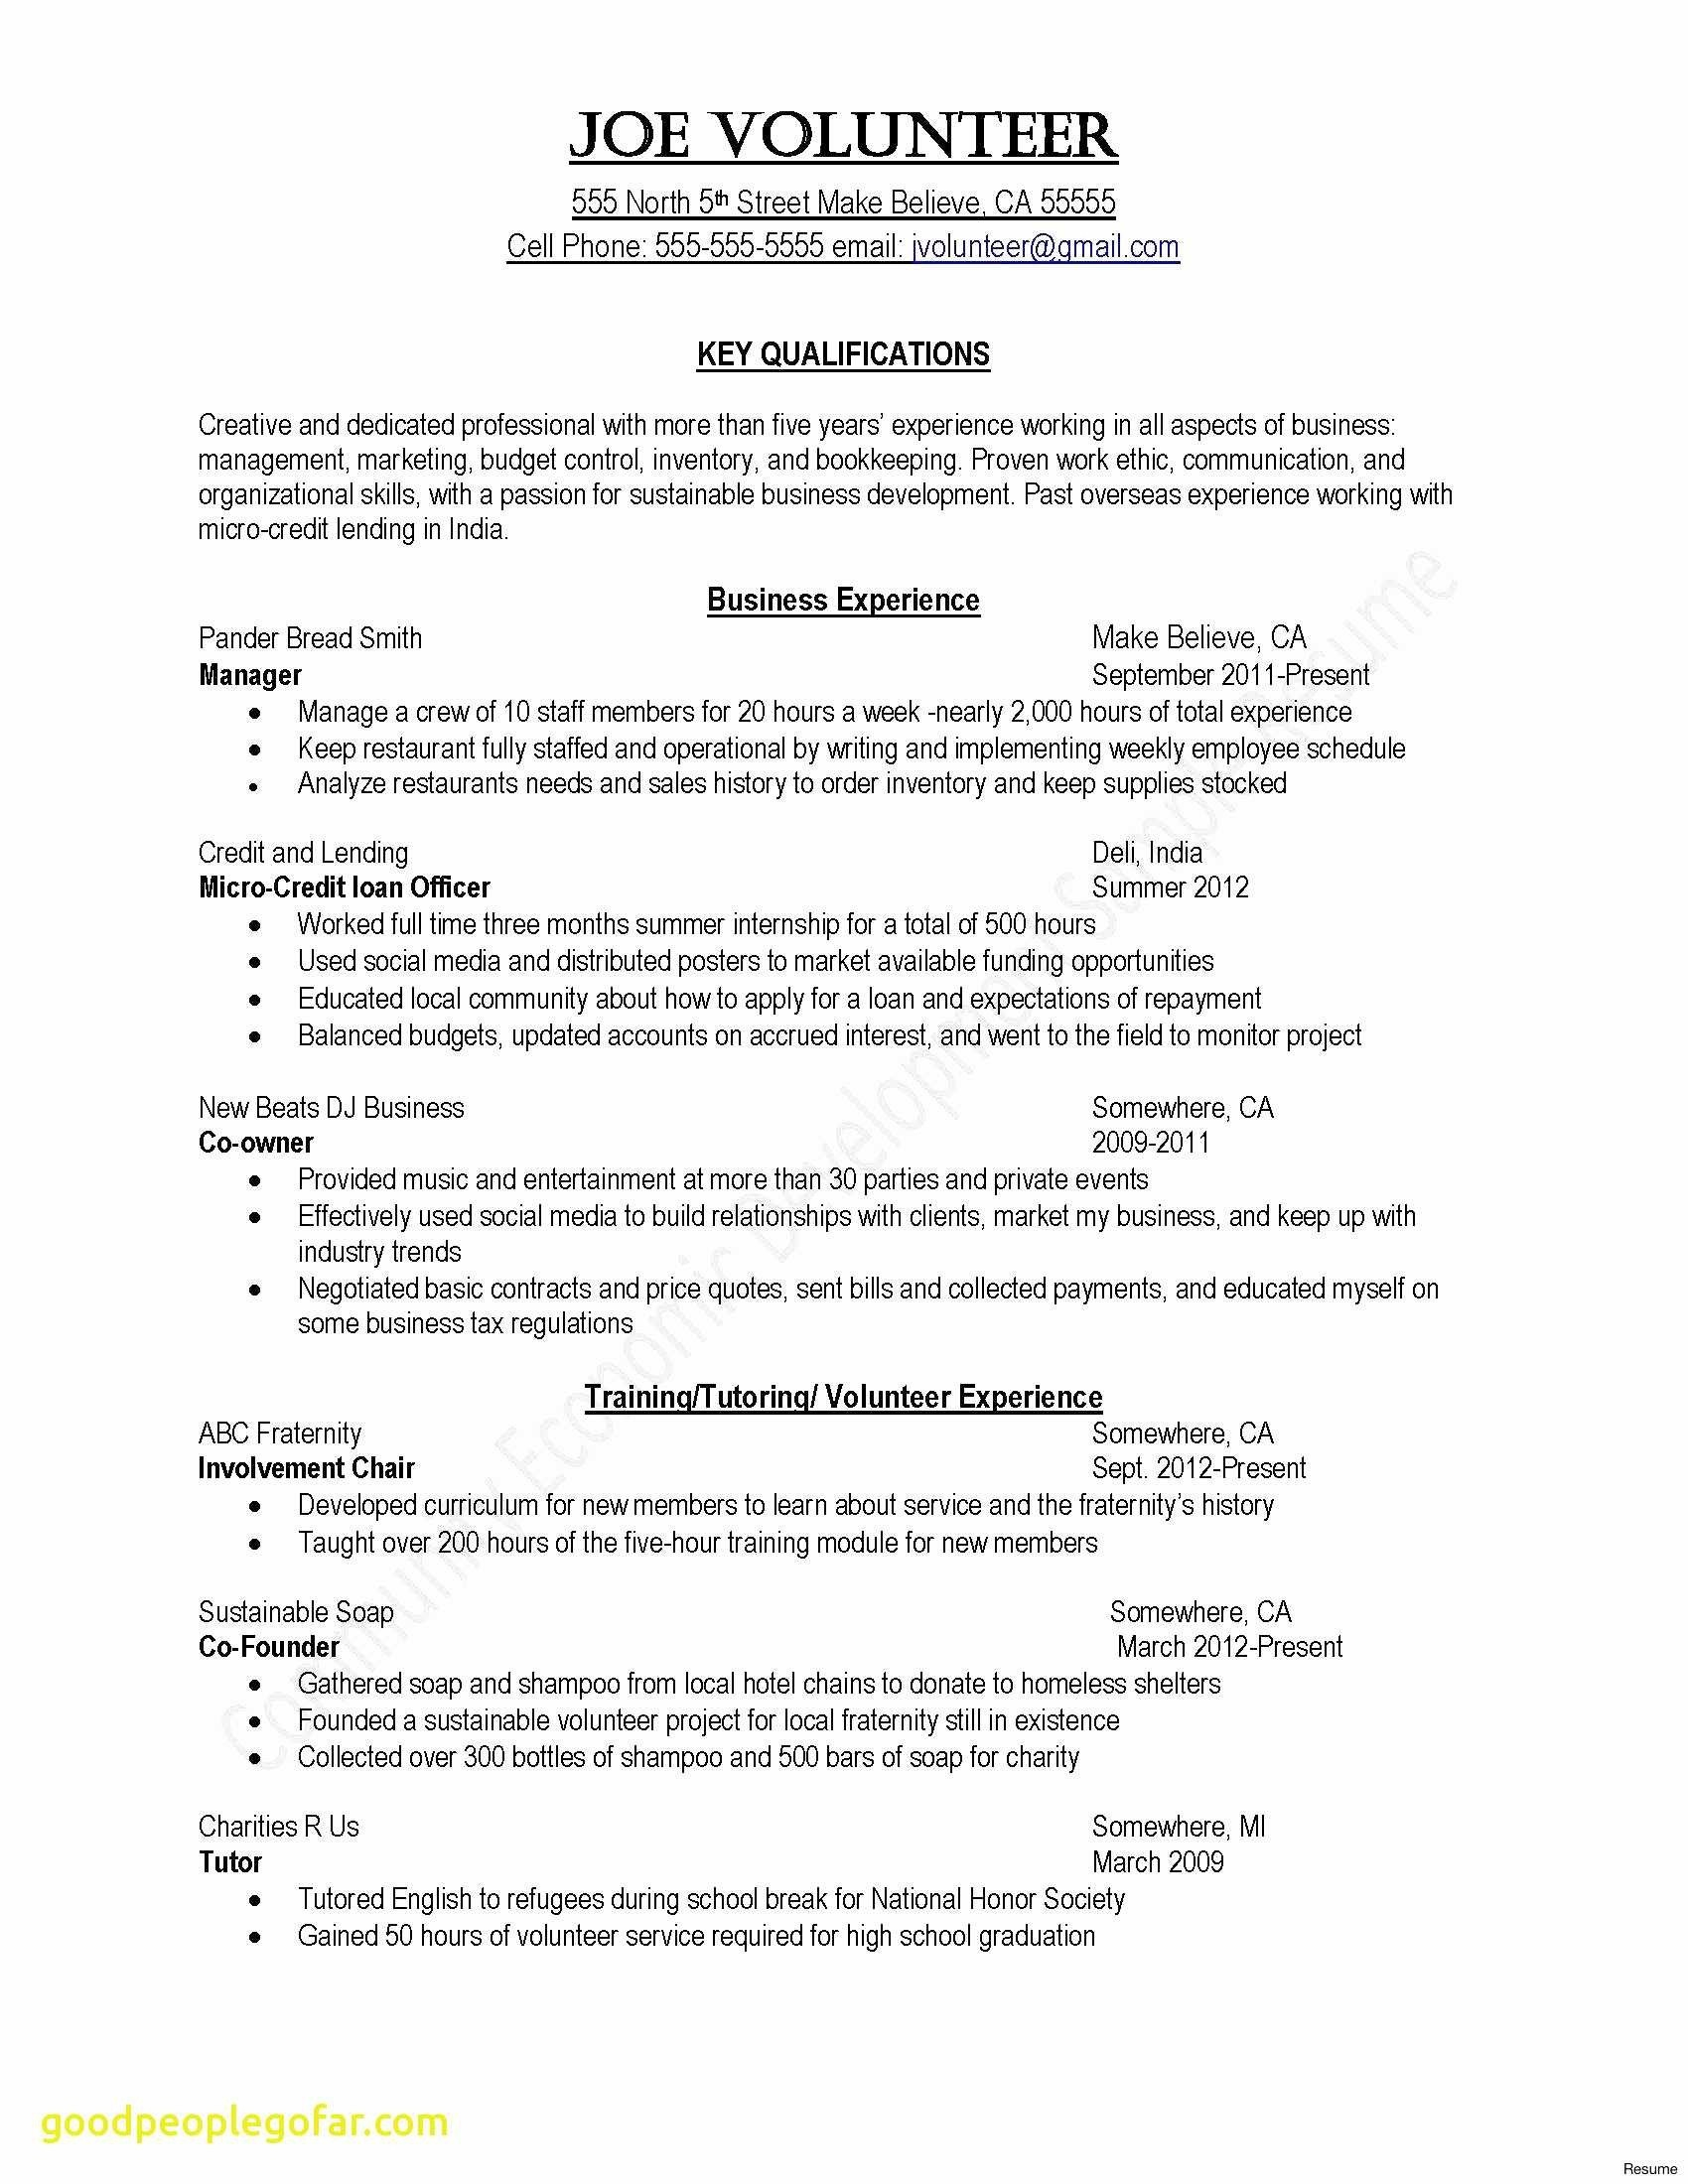 Yoga Instructor Resume - Sample Resume for Gym Instructor Sample Resume for Gym Instructor